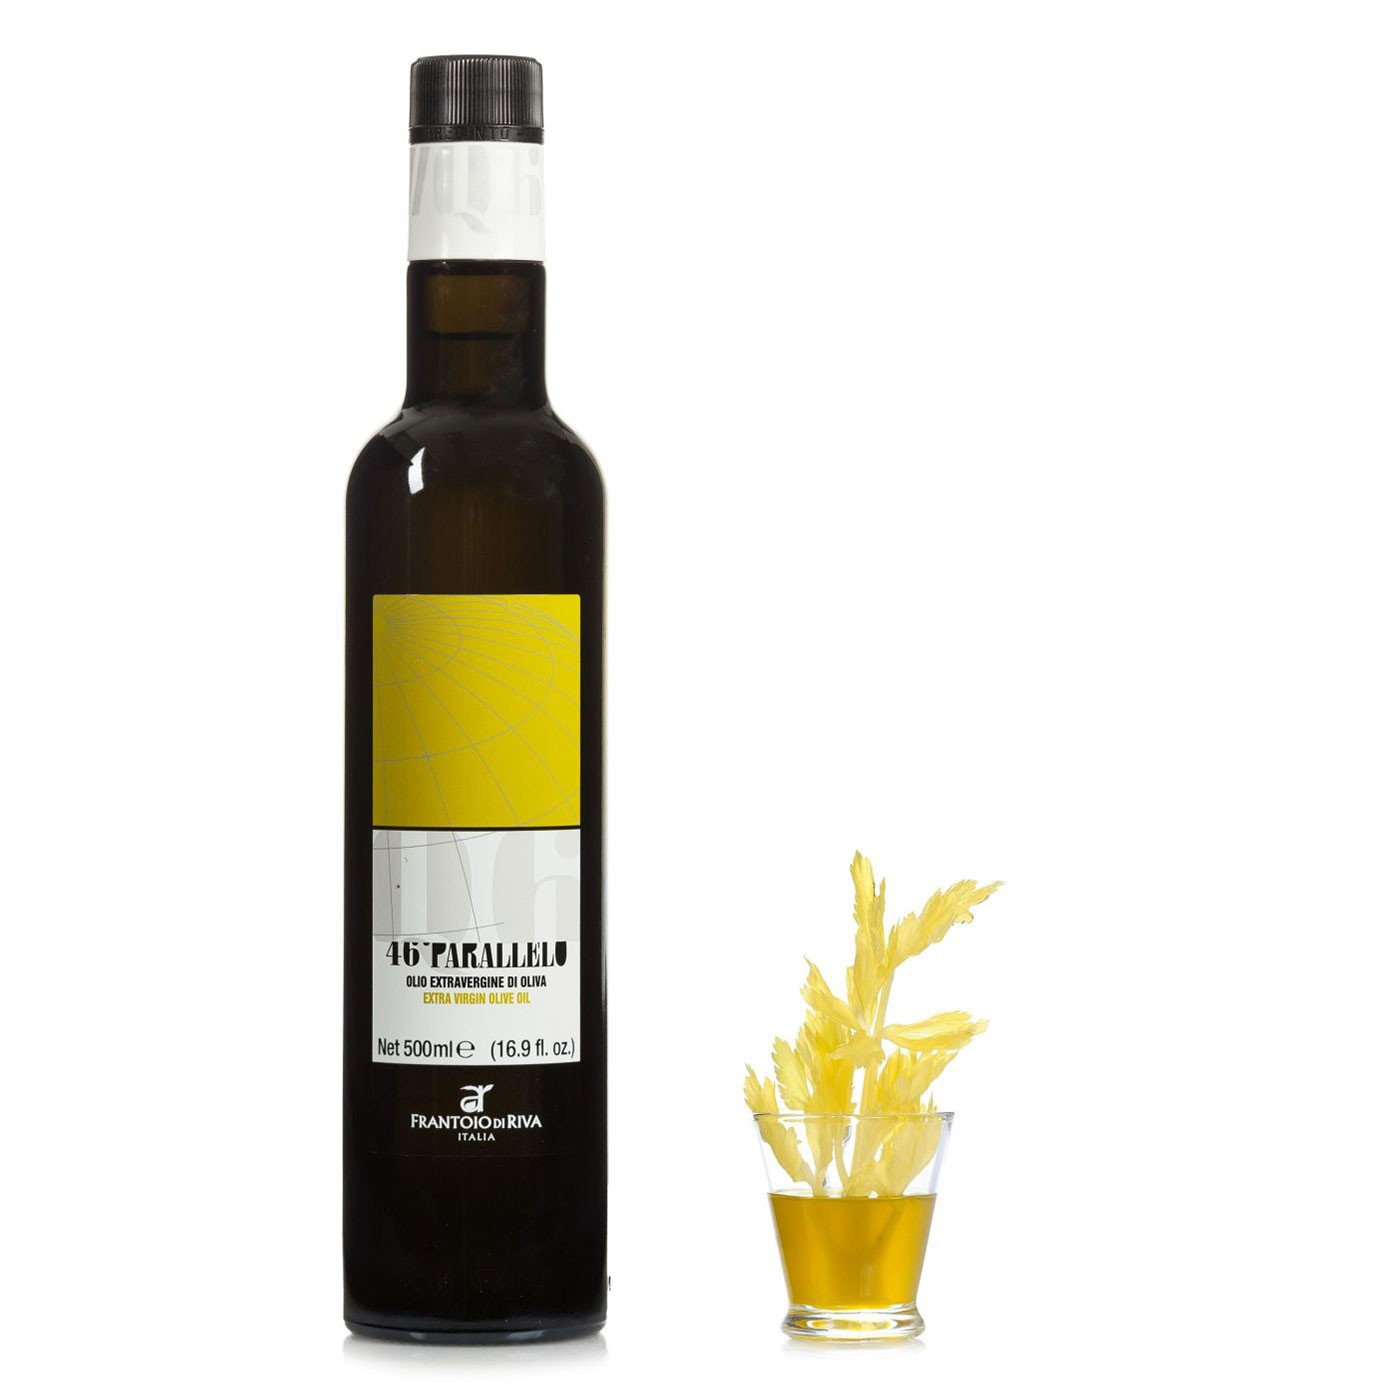 46° Parallelo Extra Virgin Olive Oil 16.9 oz